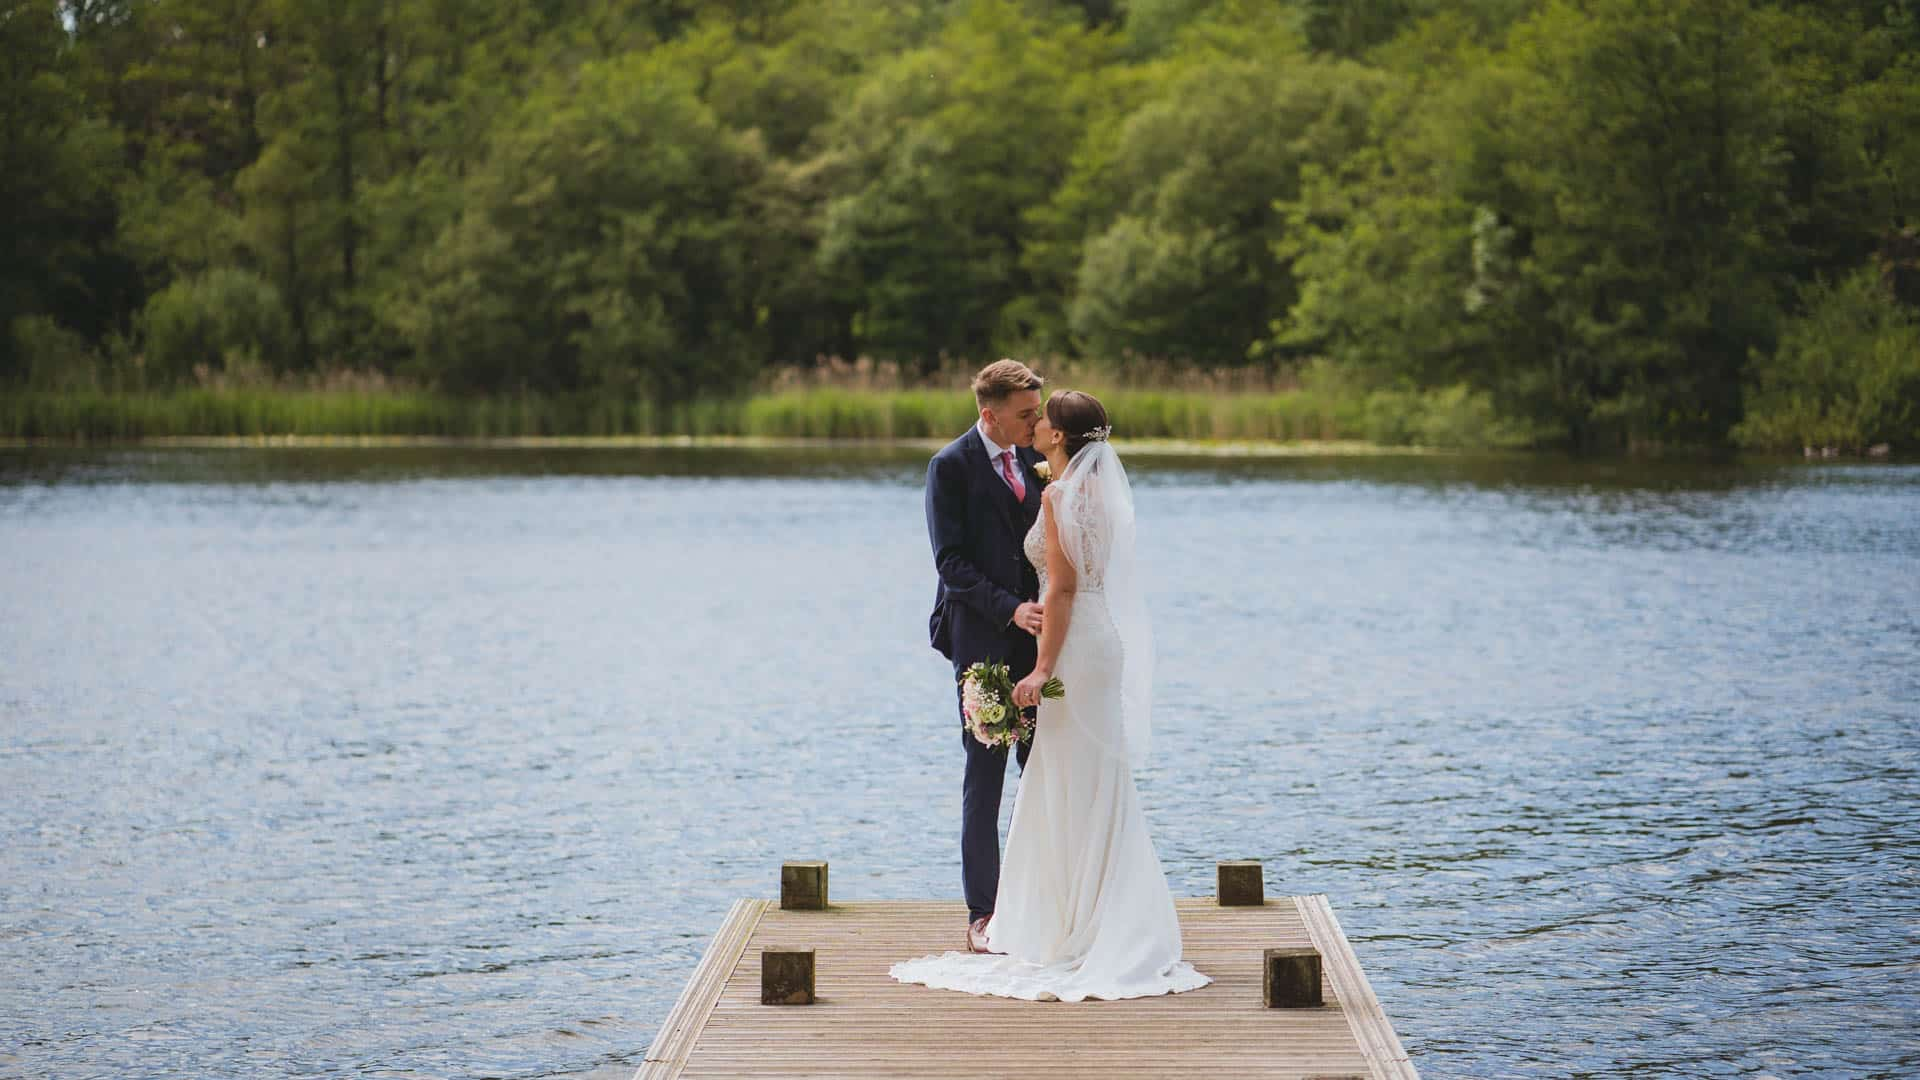 Wedding photography at Hensol castle